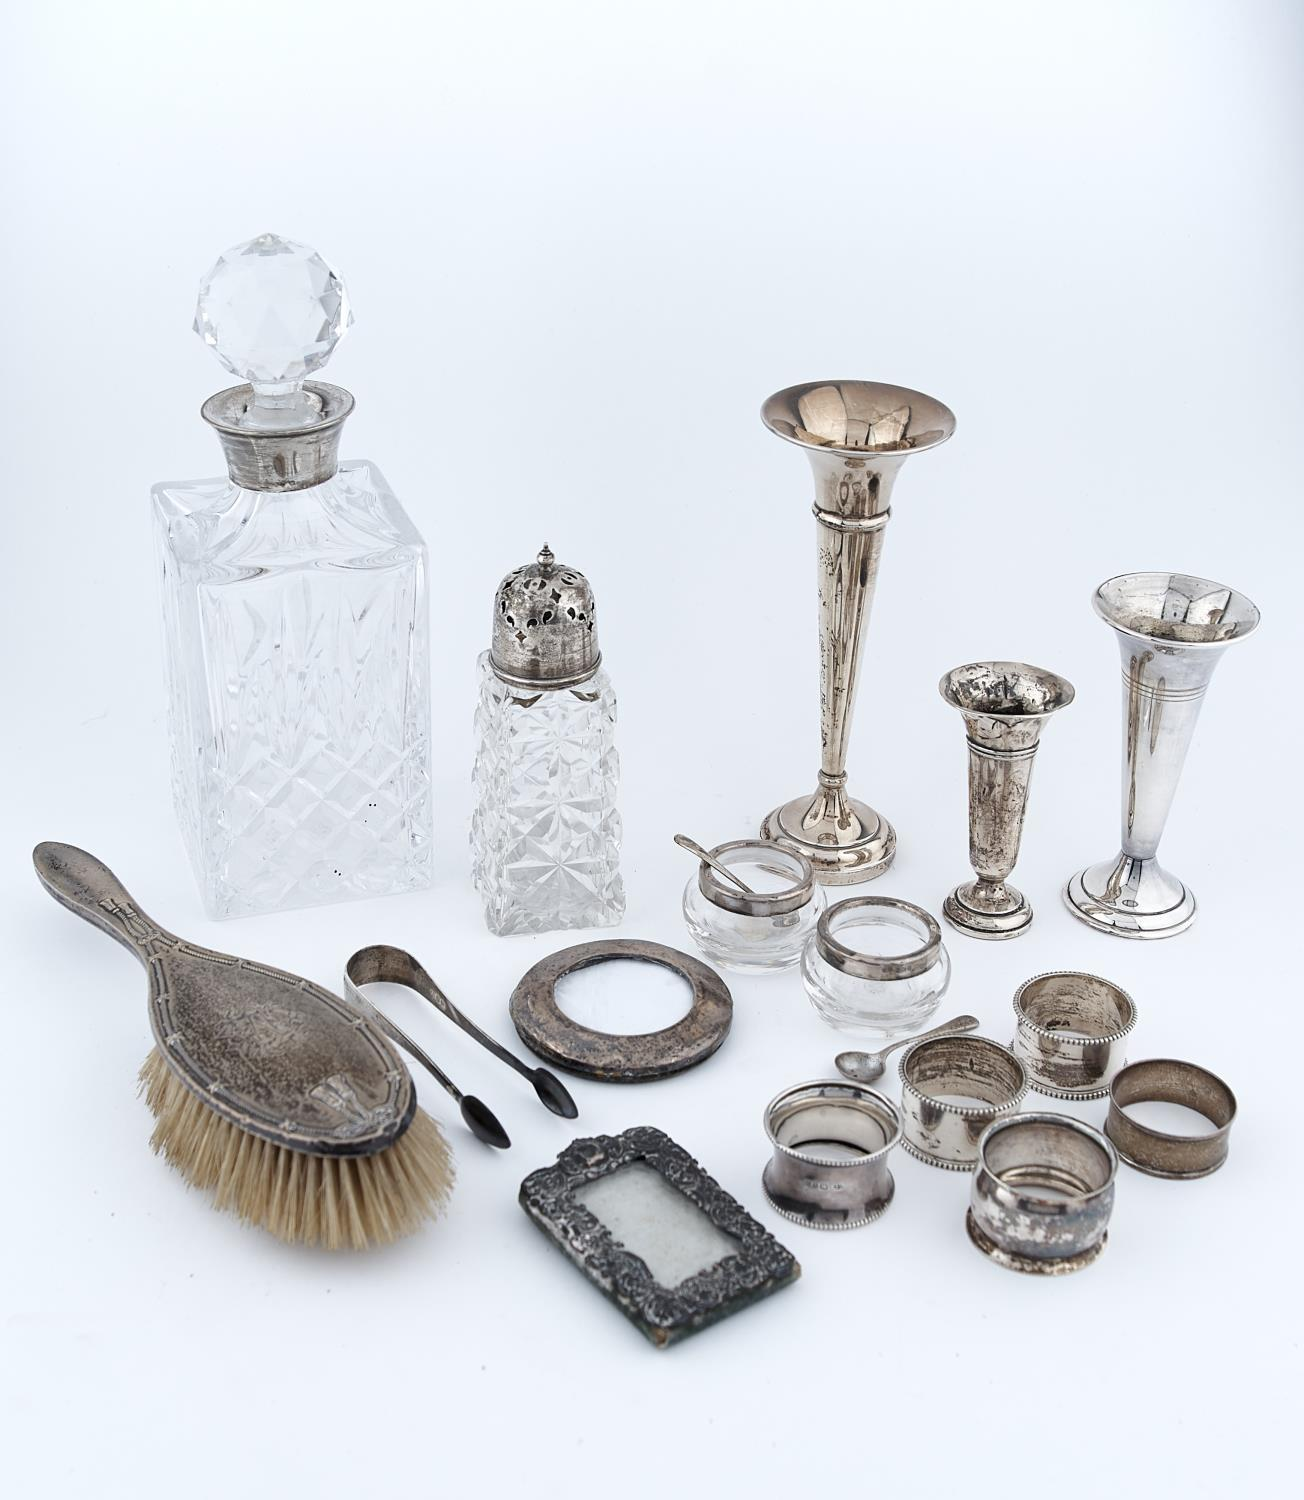 MISCELLANEOUS SILVER ARTICLES, TO INCLUDE A CUT GLASS SUGAR CASTER AND SILVER COVER, A DECANTER